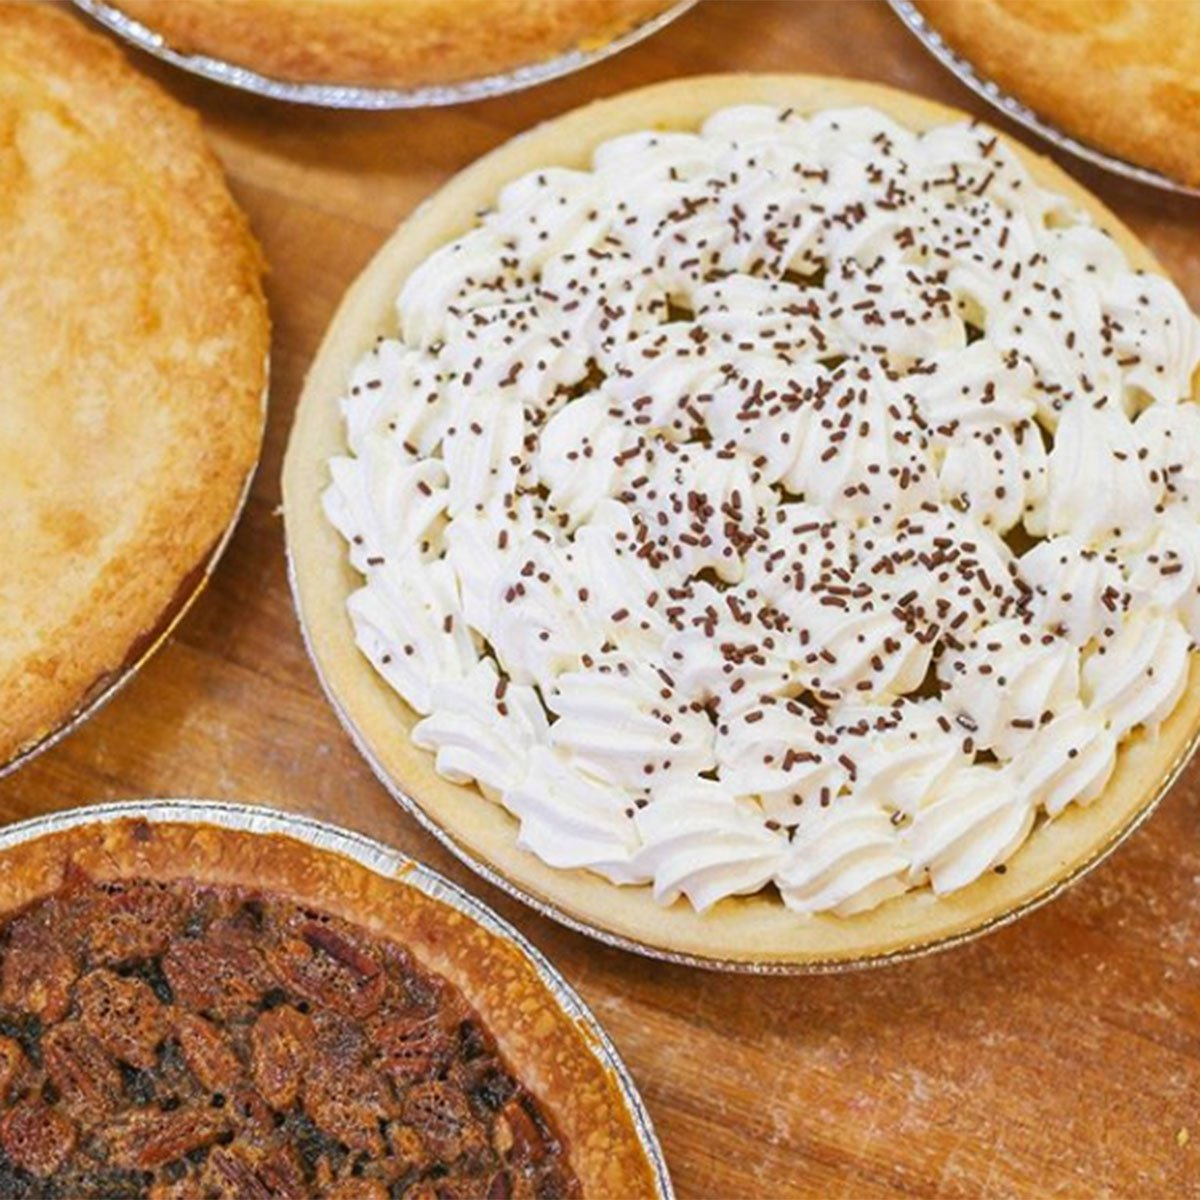 Utah - Provo Bakery, ProvoIn business for more than 75 years, Provo Bakery's original owner trained as an Army baker in Paris during the Korean War. Still operated by the same family, they'll be happy to serve your favorites like chocolate cream pie, coconut cream pie and all sorts of fruit pies including mincemeat.Photo courtesy @PROVOBAKERY/INSTAGRAM